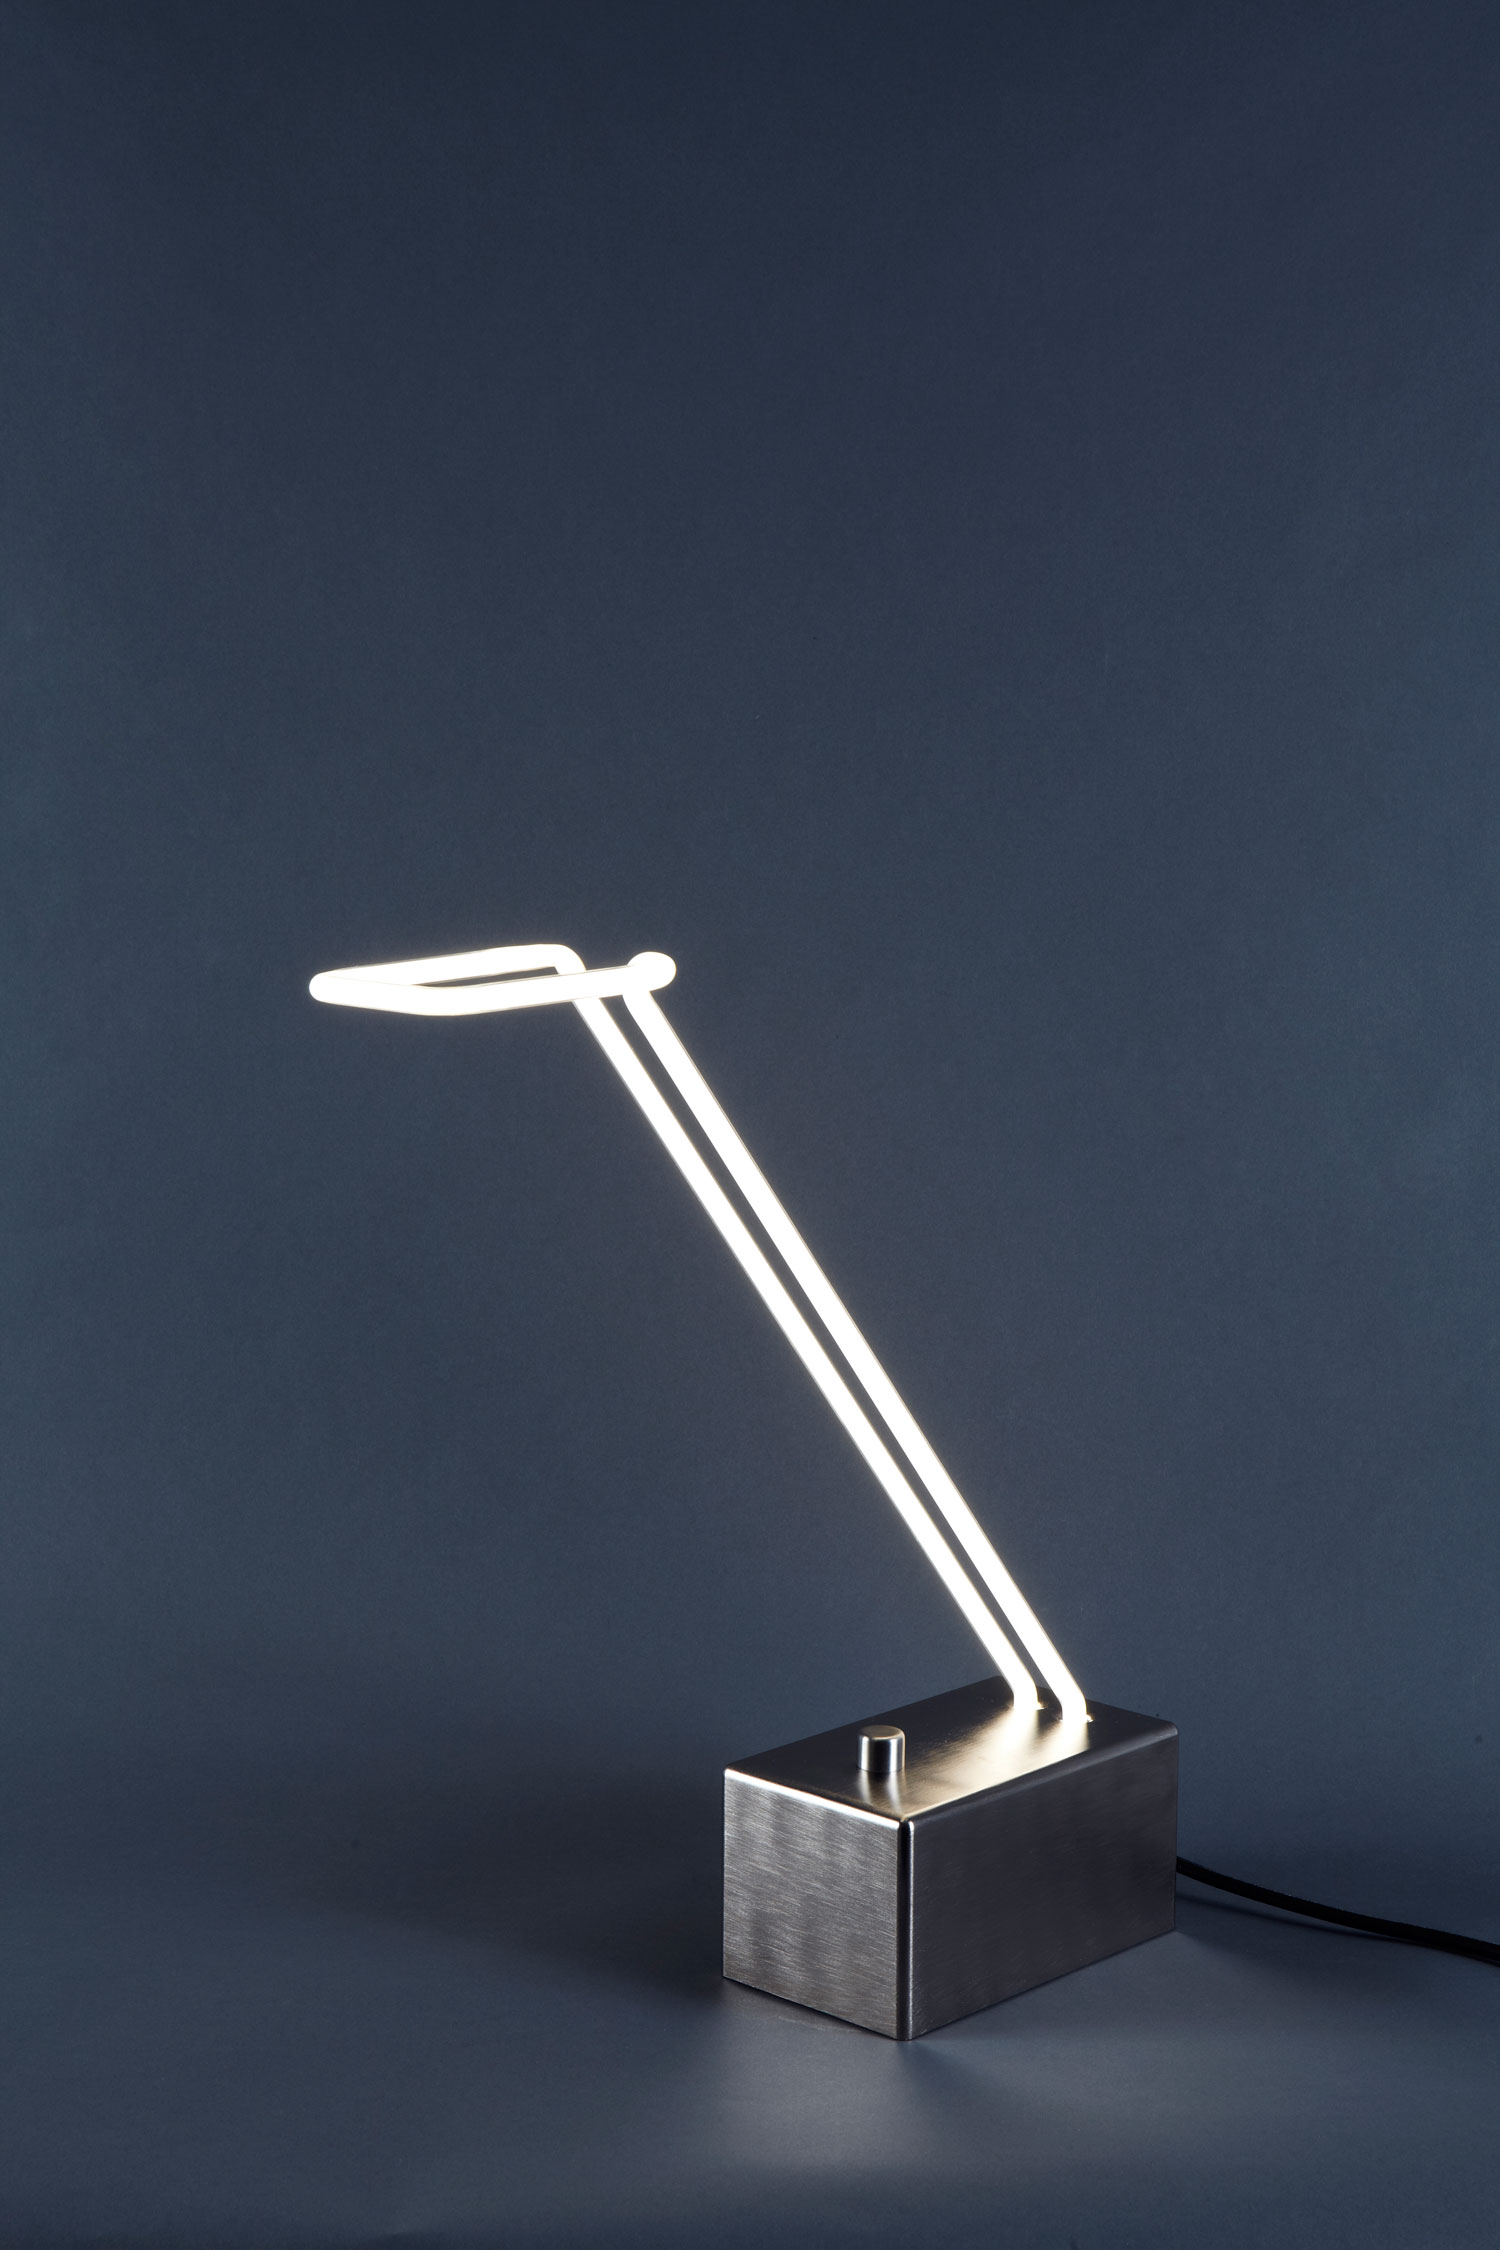 Light Line Table Lamp by Mary Wallis for Lindsey Adelman | Yellowtrace